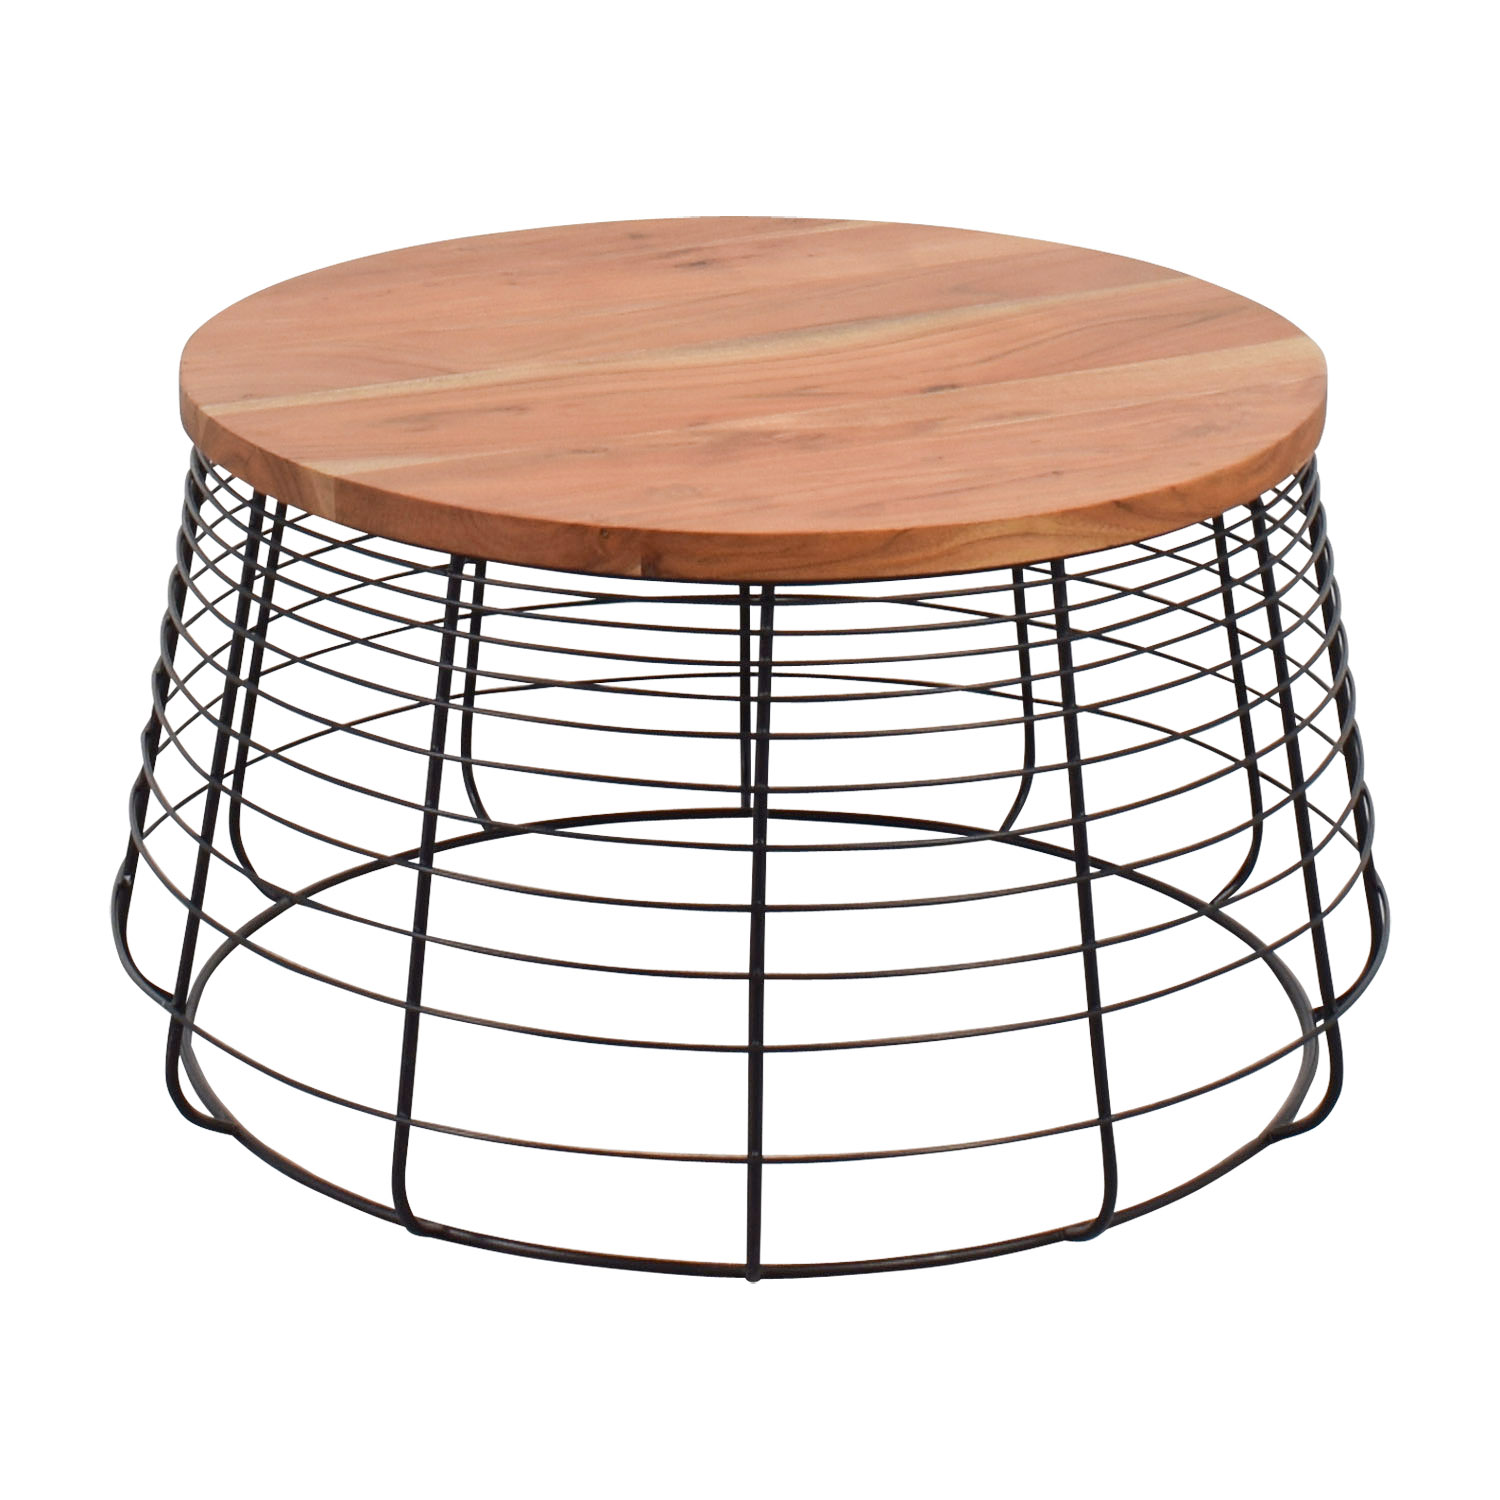 CB2 Apis Round Coffee Table / Tables